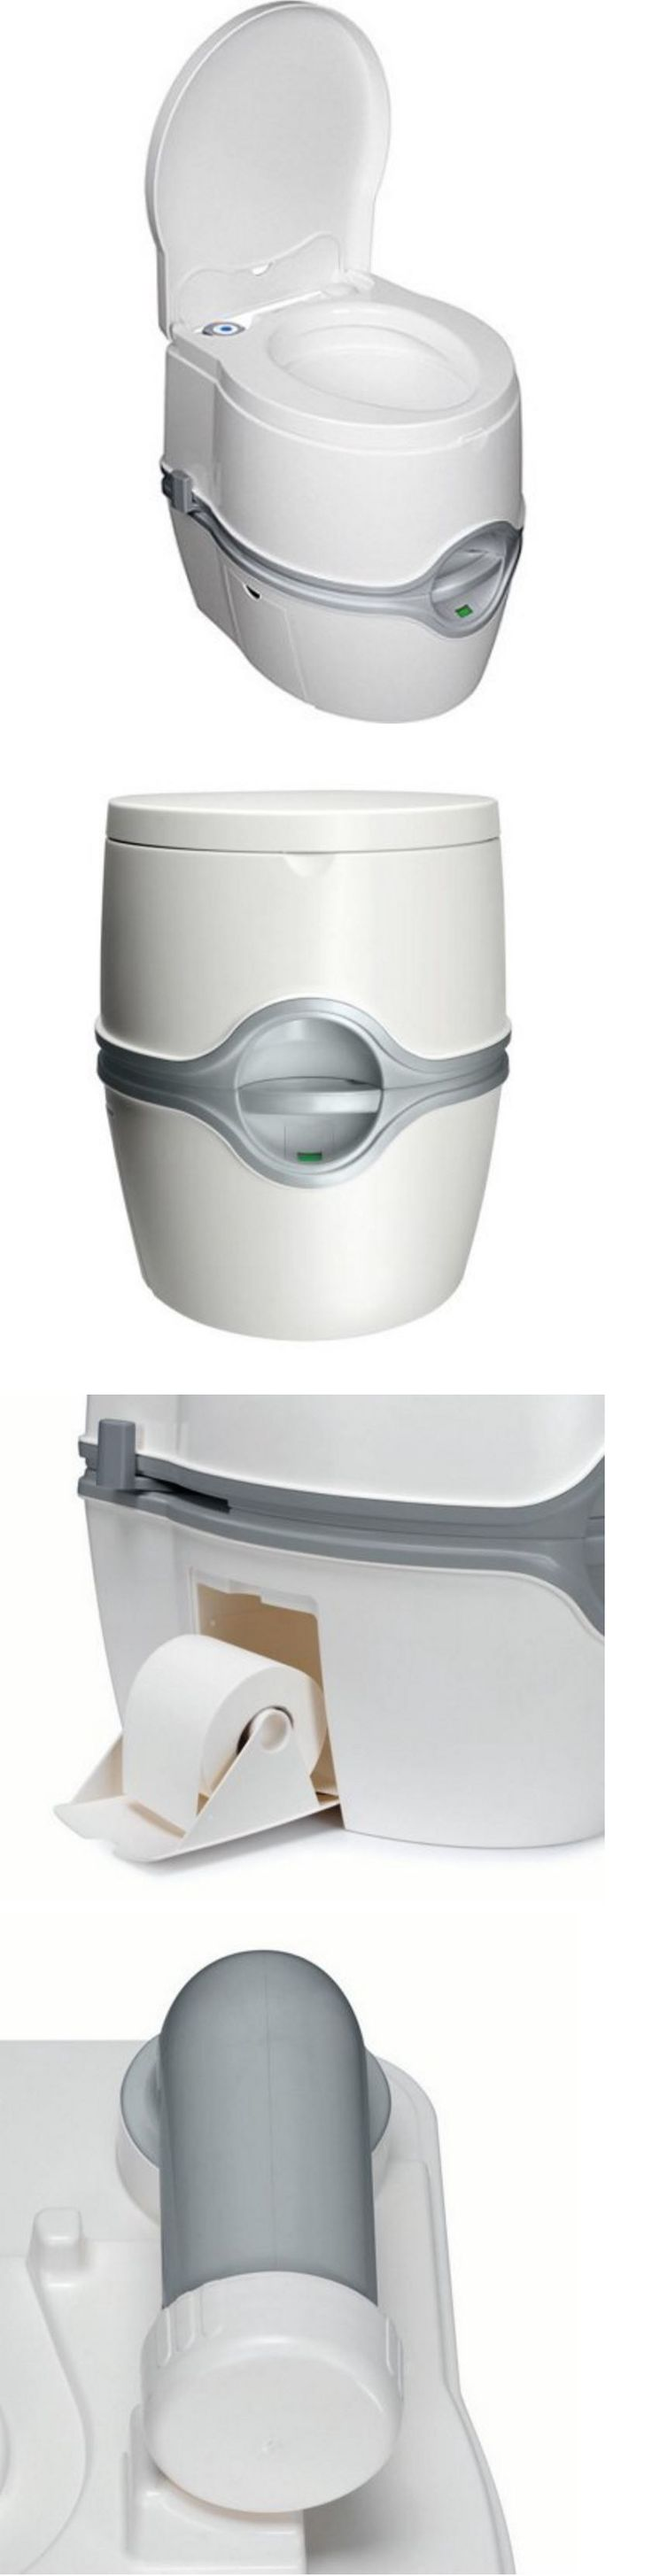 Portable Toilets and Accessories 181397: Porta Potty For Camping Portable Toilet Marine Restroom Travel Outdoor Boat 5.5G BUY IT NOW ONLY: $161.99